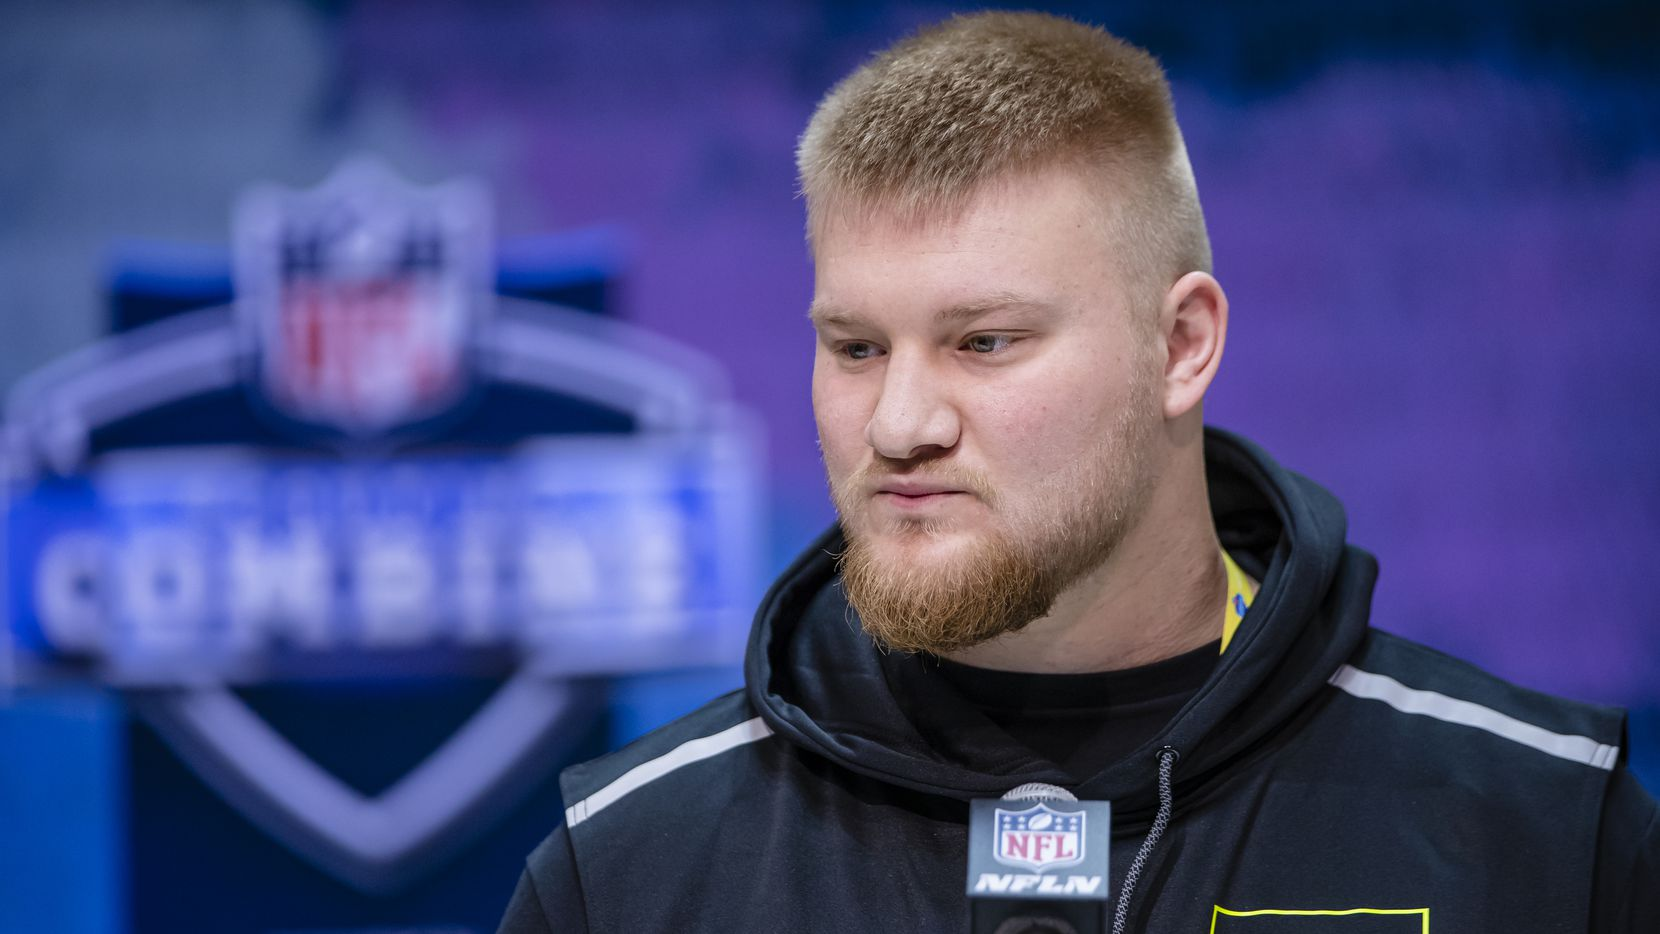 INDIANAPOLIS, IN - FEBRUARY 26: Tyler Biadasz #OL06 of the Wisconsin Badgers speaks to the media at the Indiana Convention Center on February 26, 2020 in Indianapolis, Indiana.